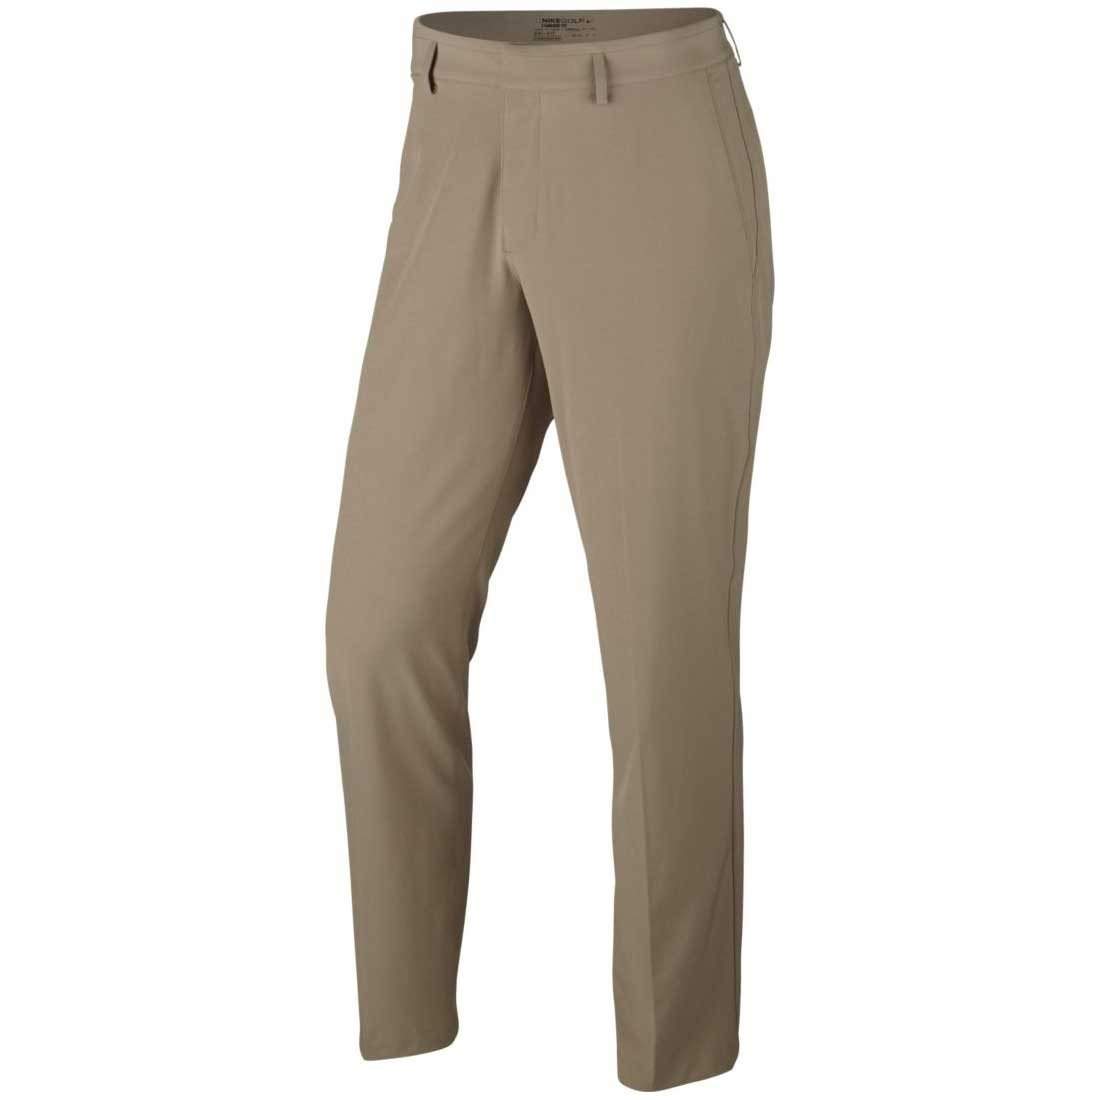 Nike Flat Front Stretch Woven Golf Pants 2017 Khaki/Anthracite 35/34 by Nike